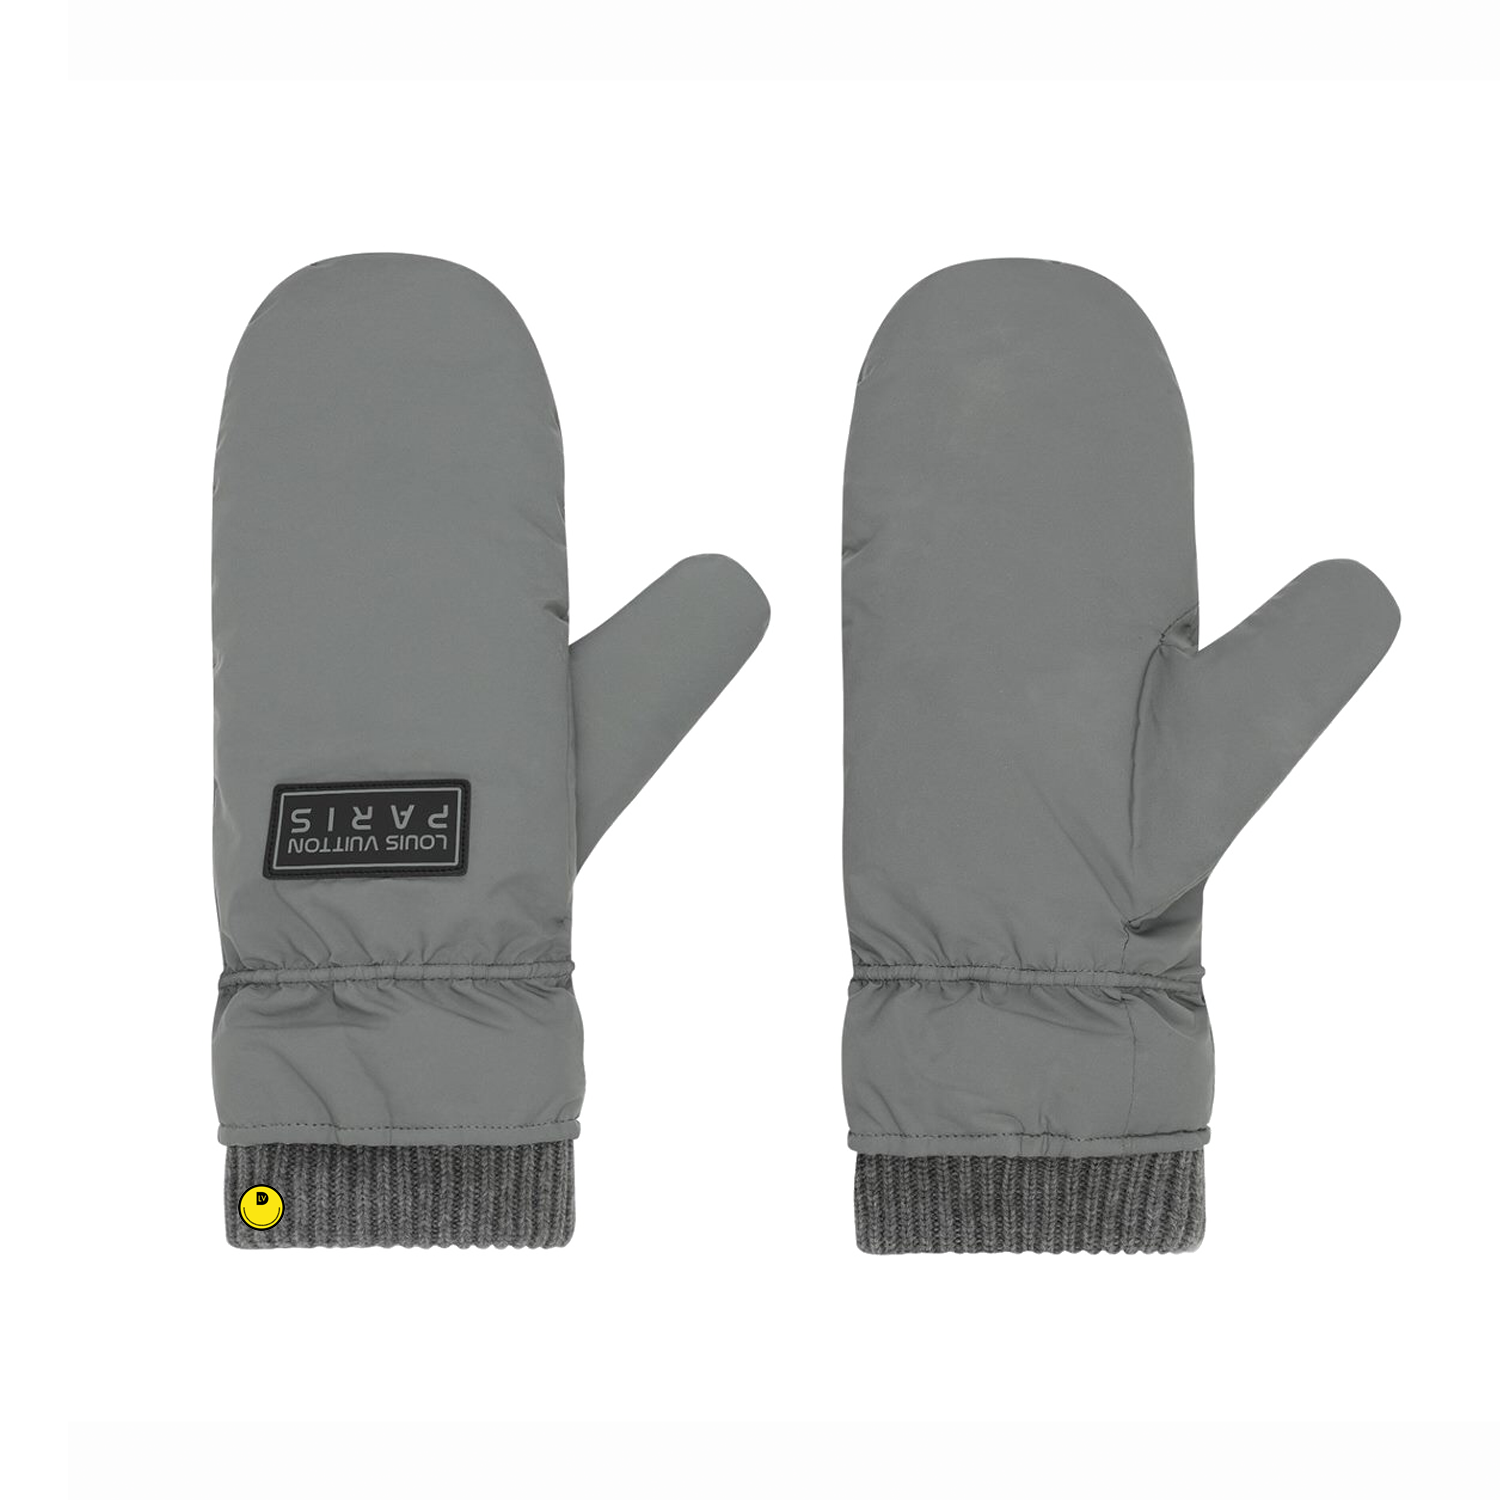 SPACE MISSION GLOVES - €695 $MP2232REFLECTIVE